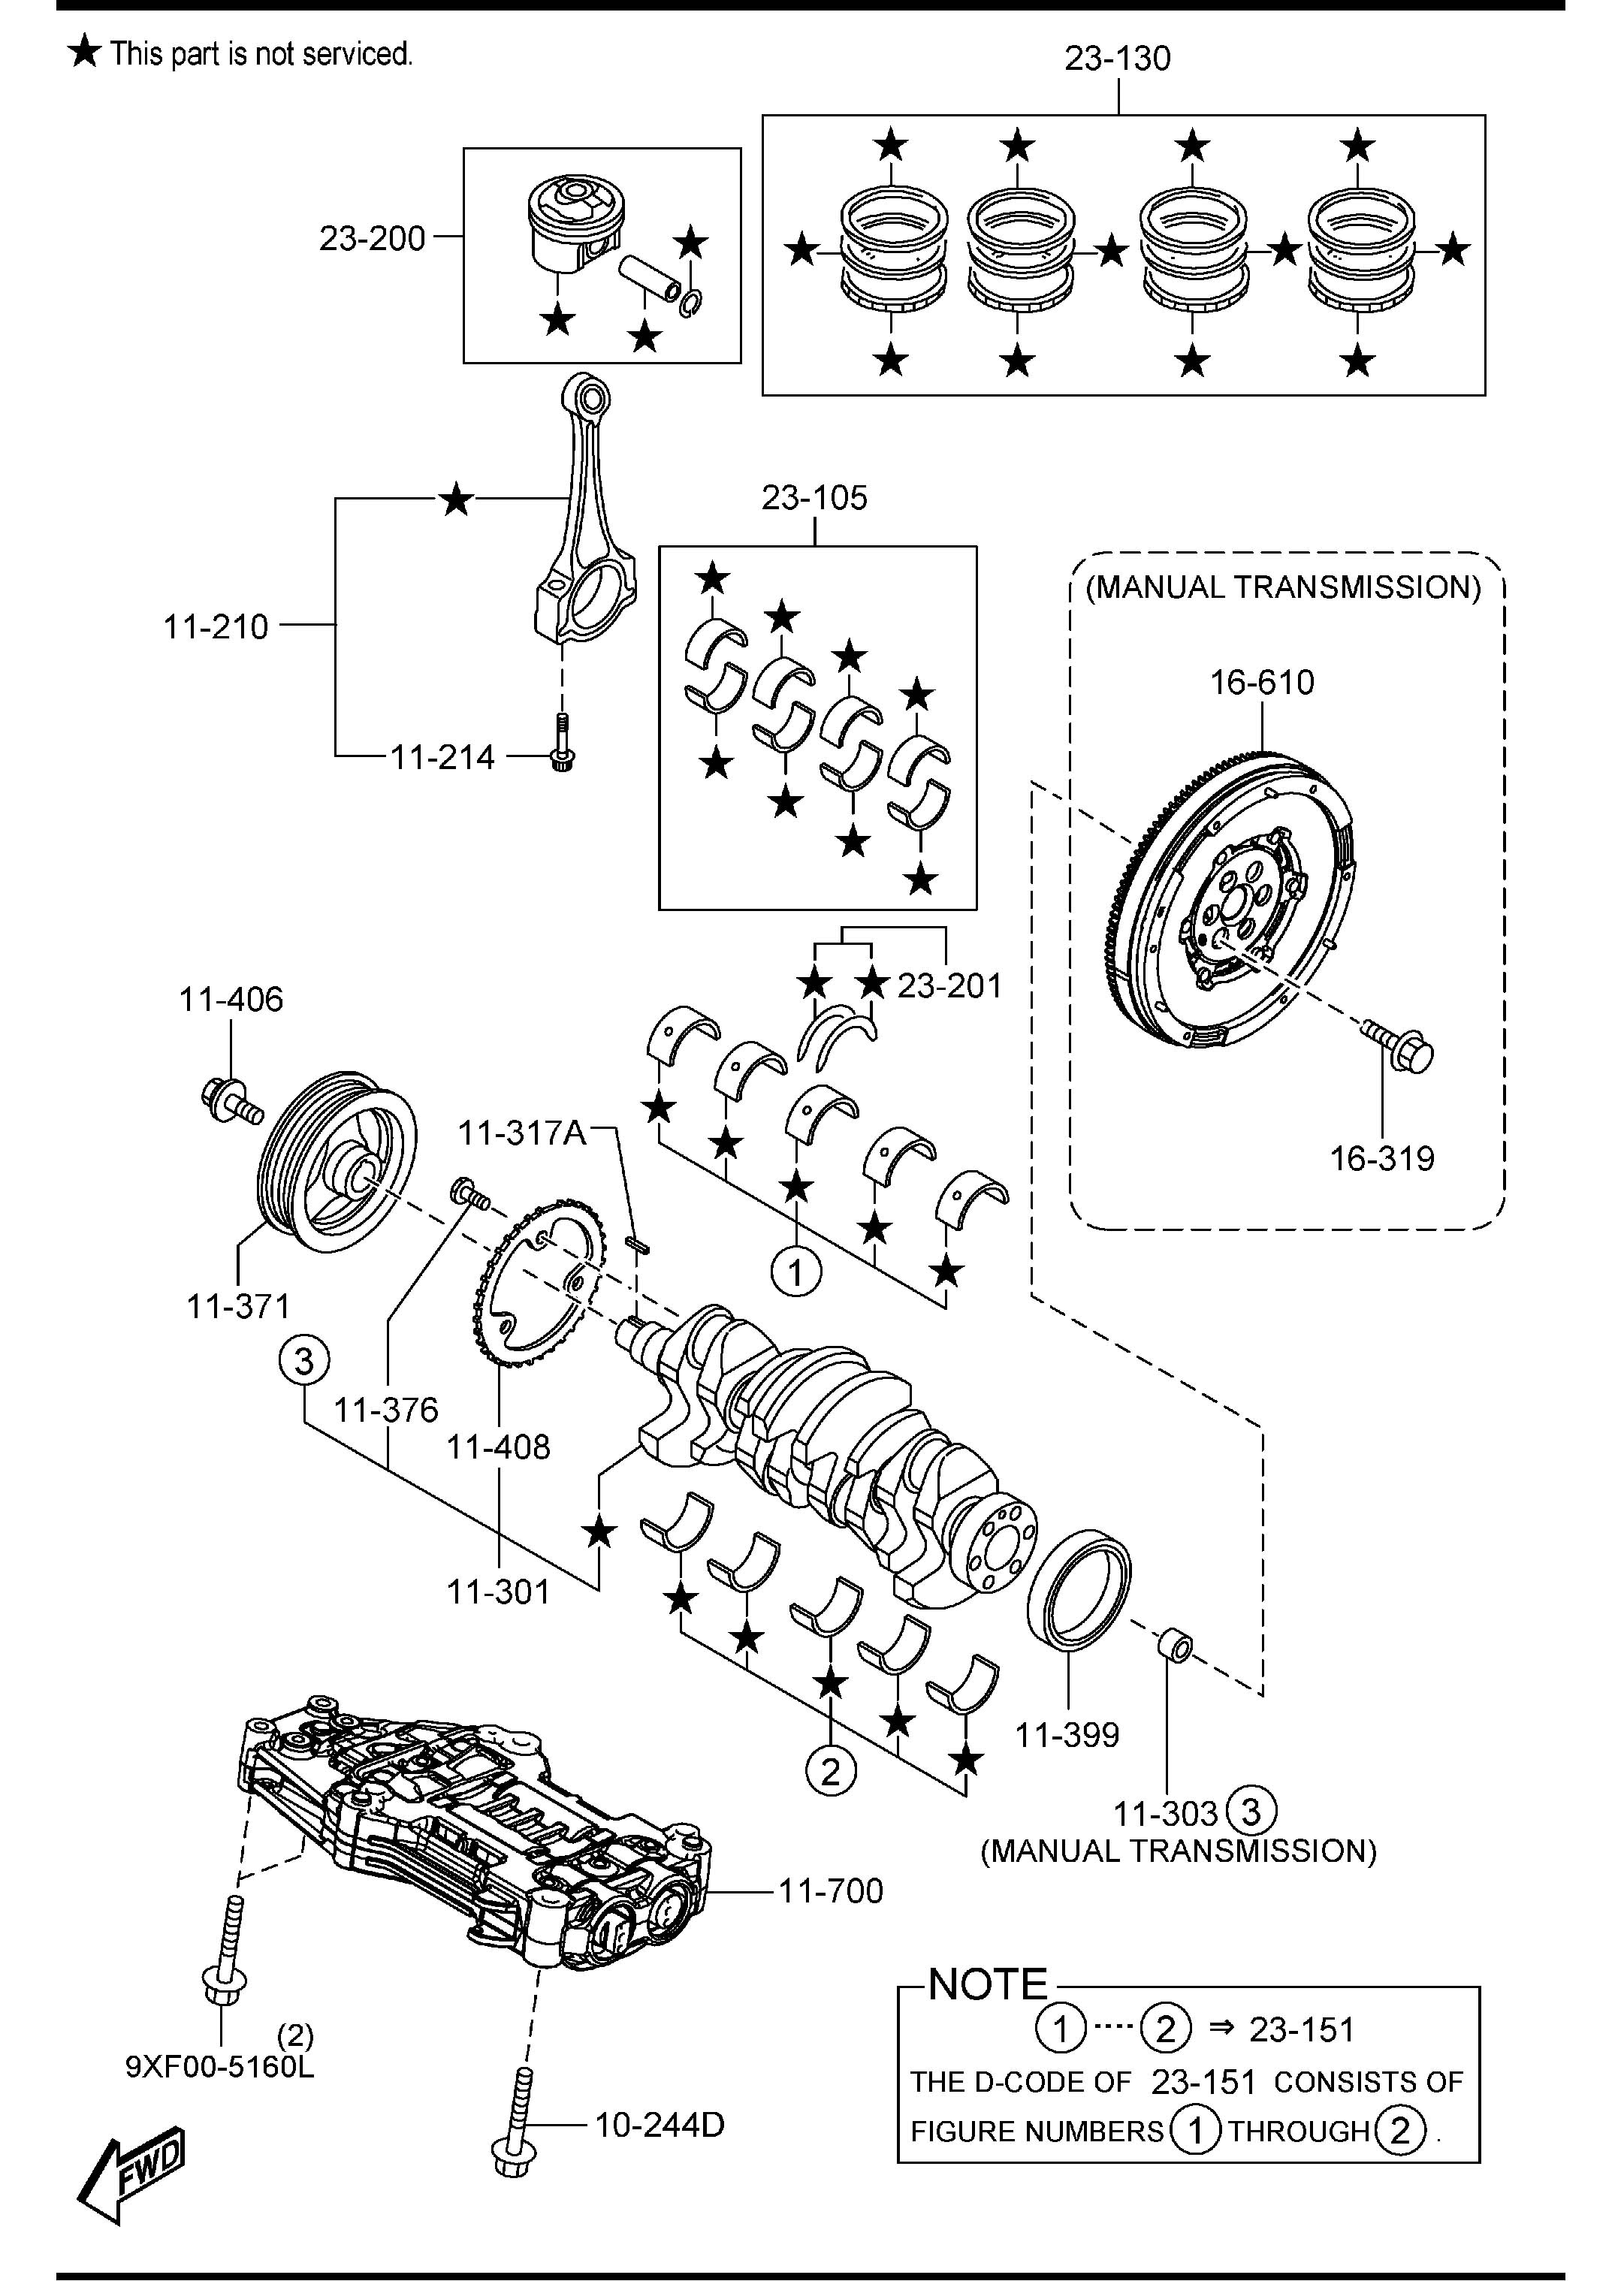 Crankshaft Flywheel And Alternator Diagram And Parts